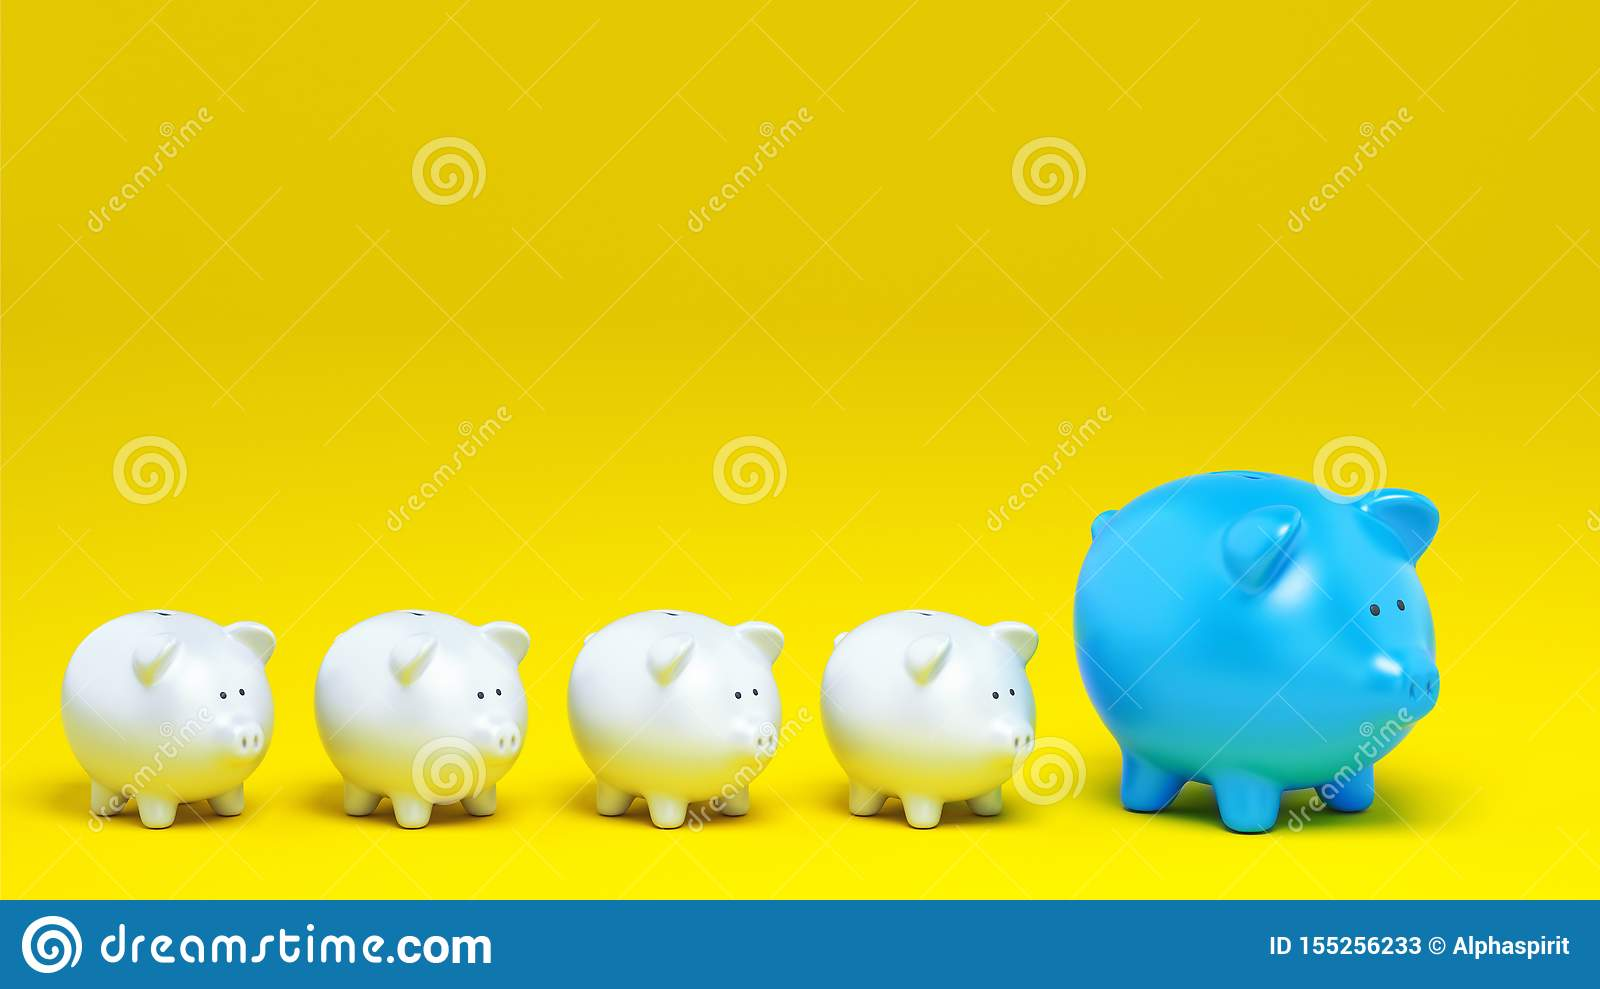 Economic concept of increased savings with a row of piggy banks on yellow background. 3D Rendering